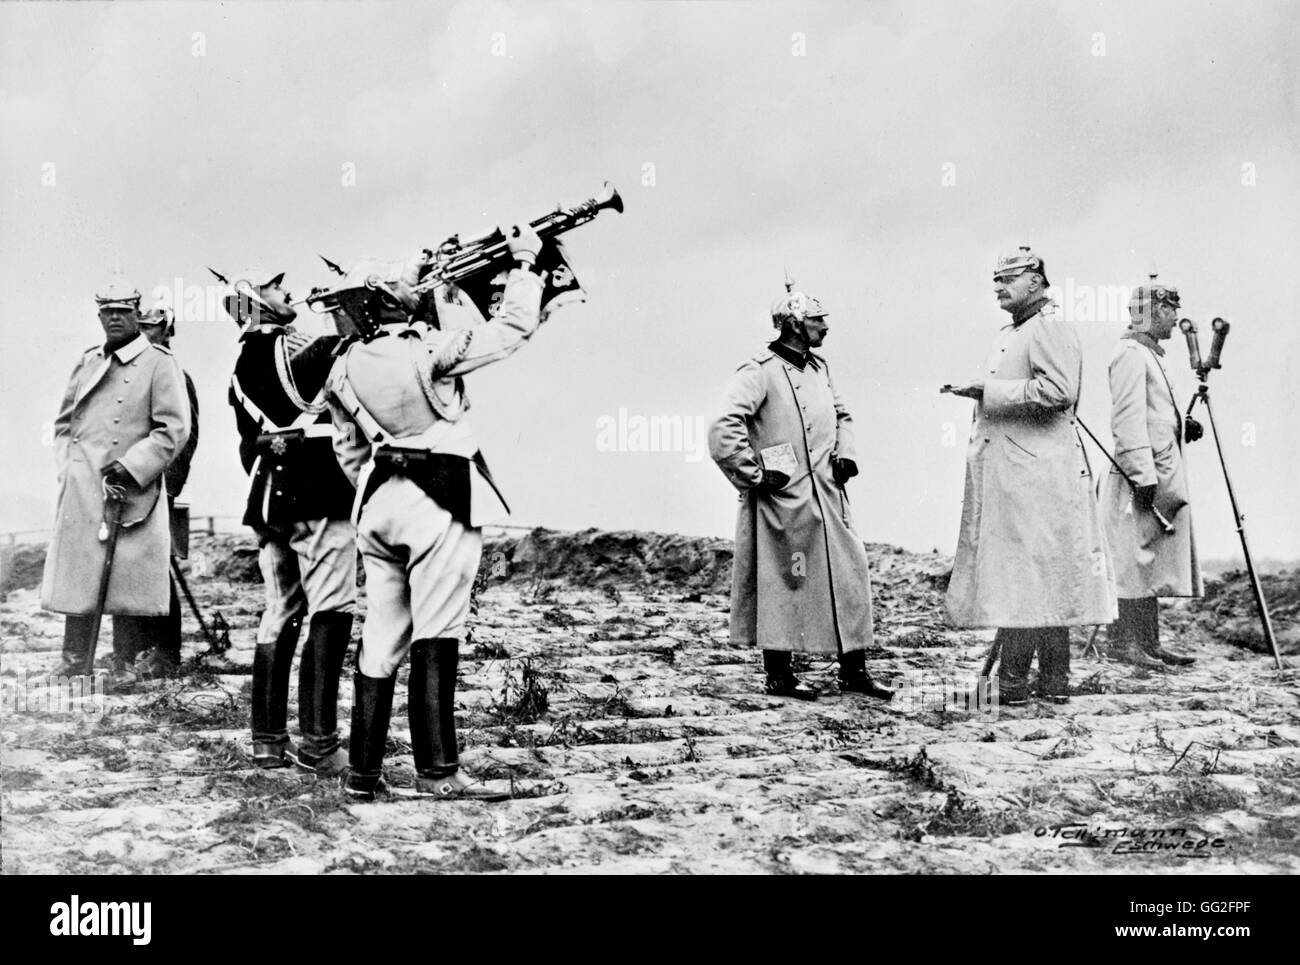 First World War. A manoeuvre of the Kaiser in 1913. - Stock Image